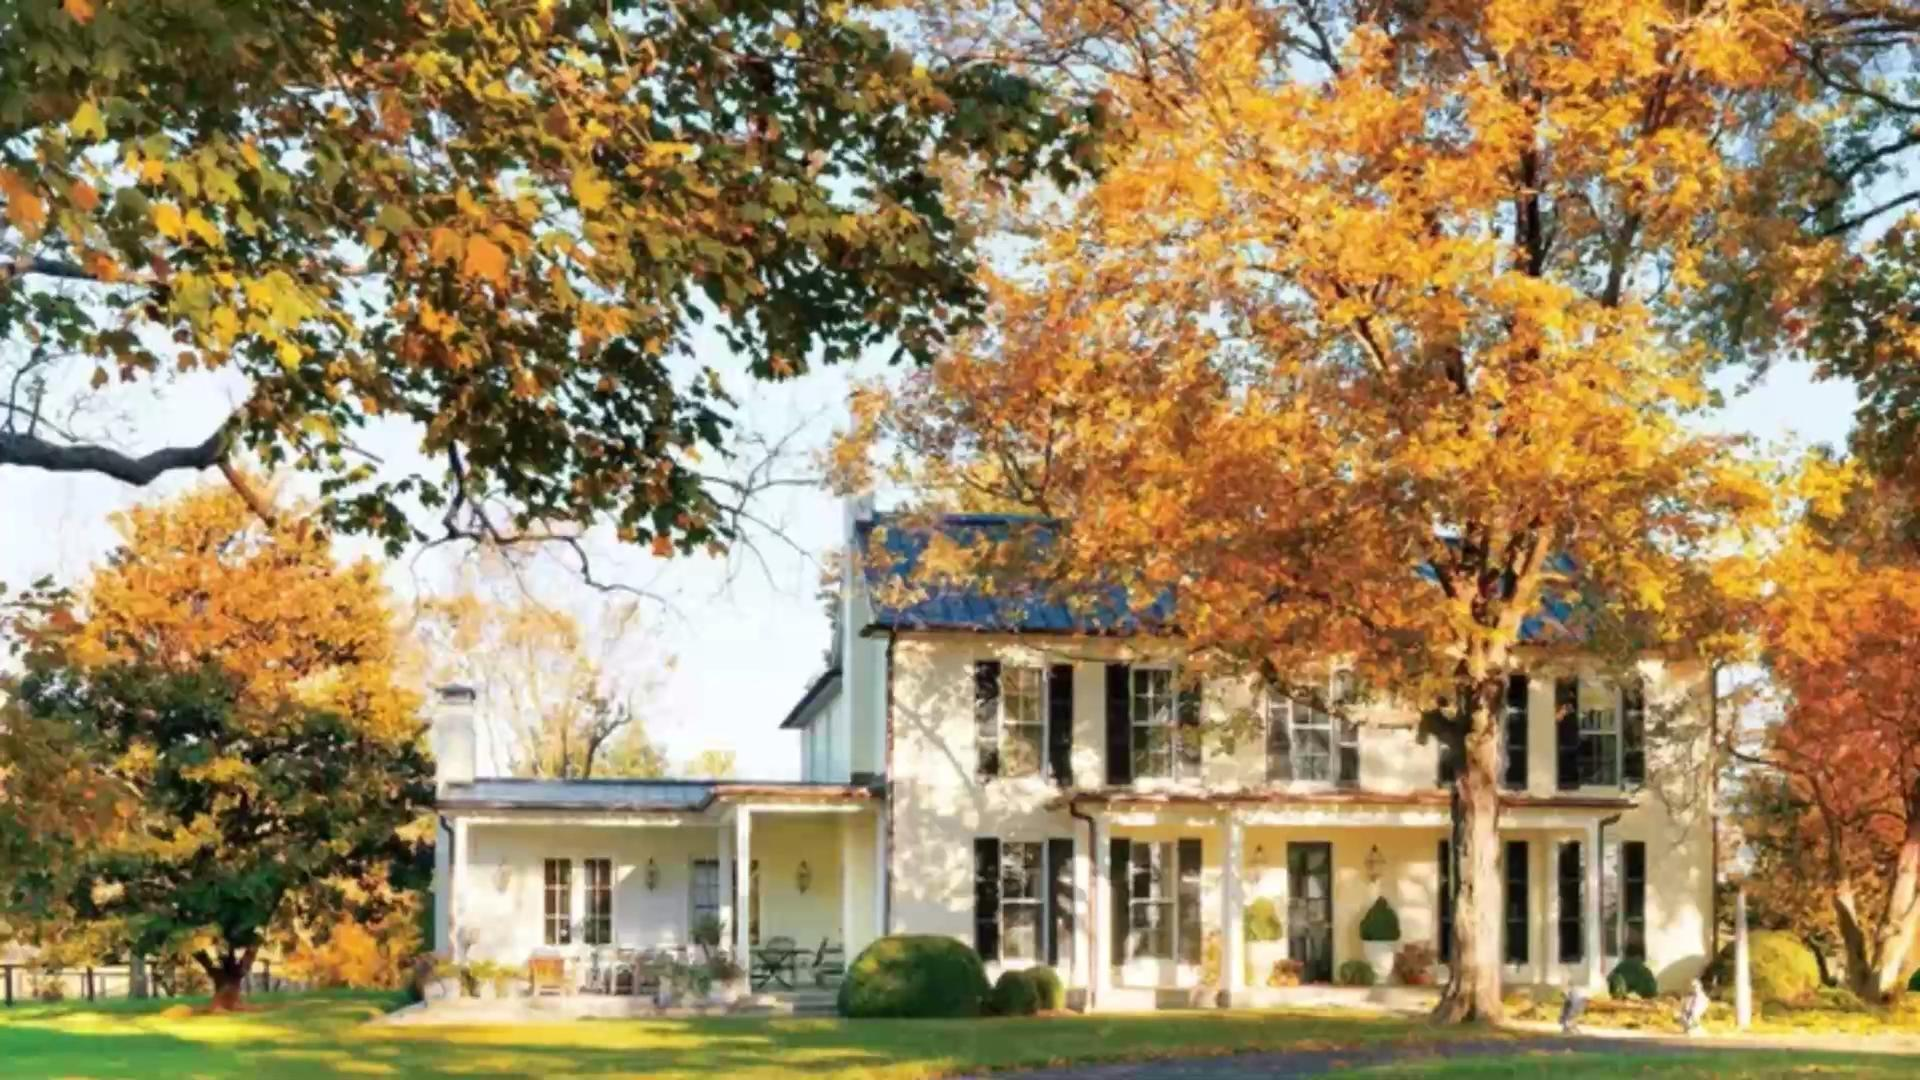 This Kentucky Farmhouse is the Perfect Blend of Old and New